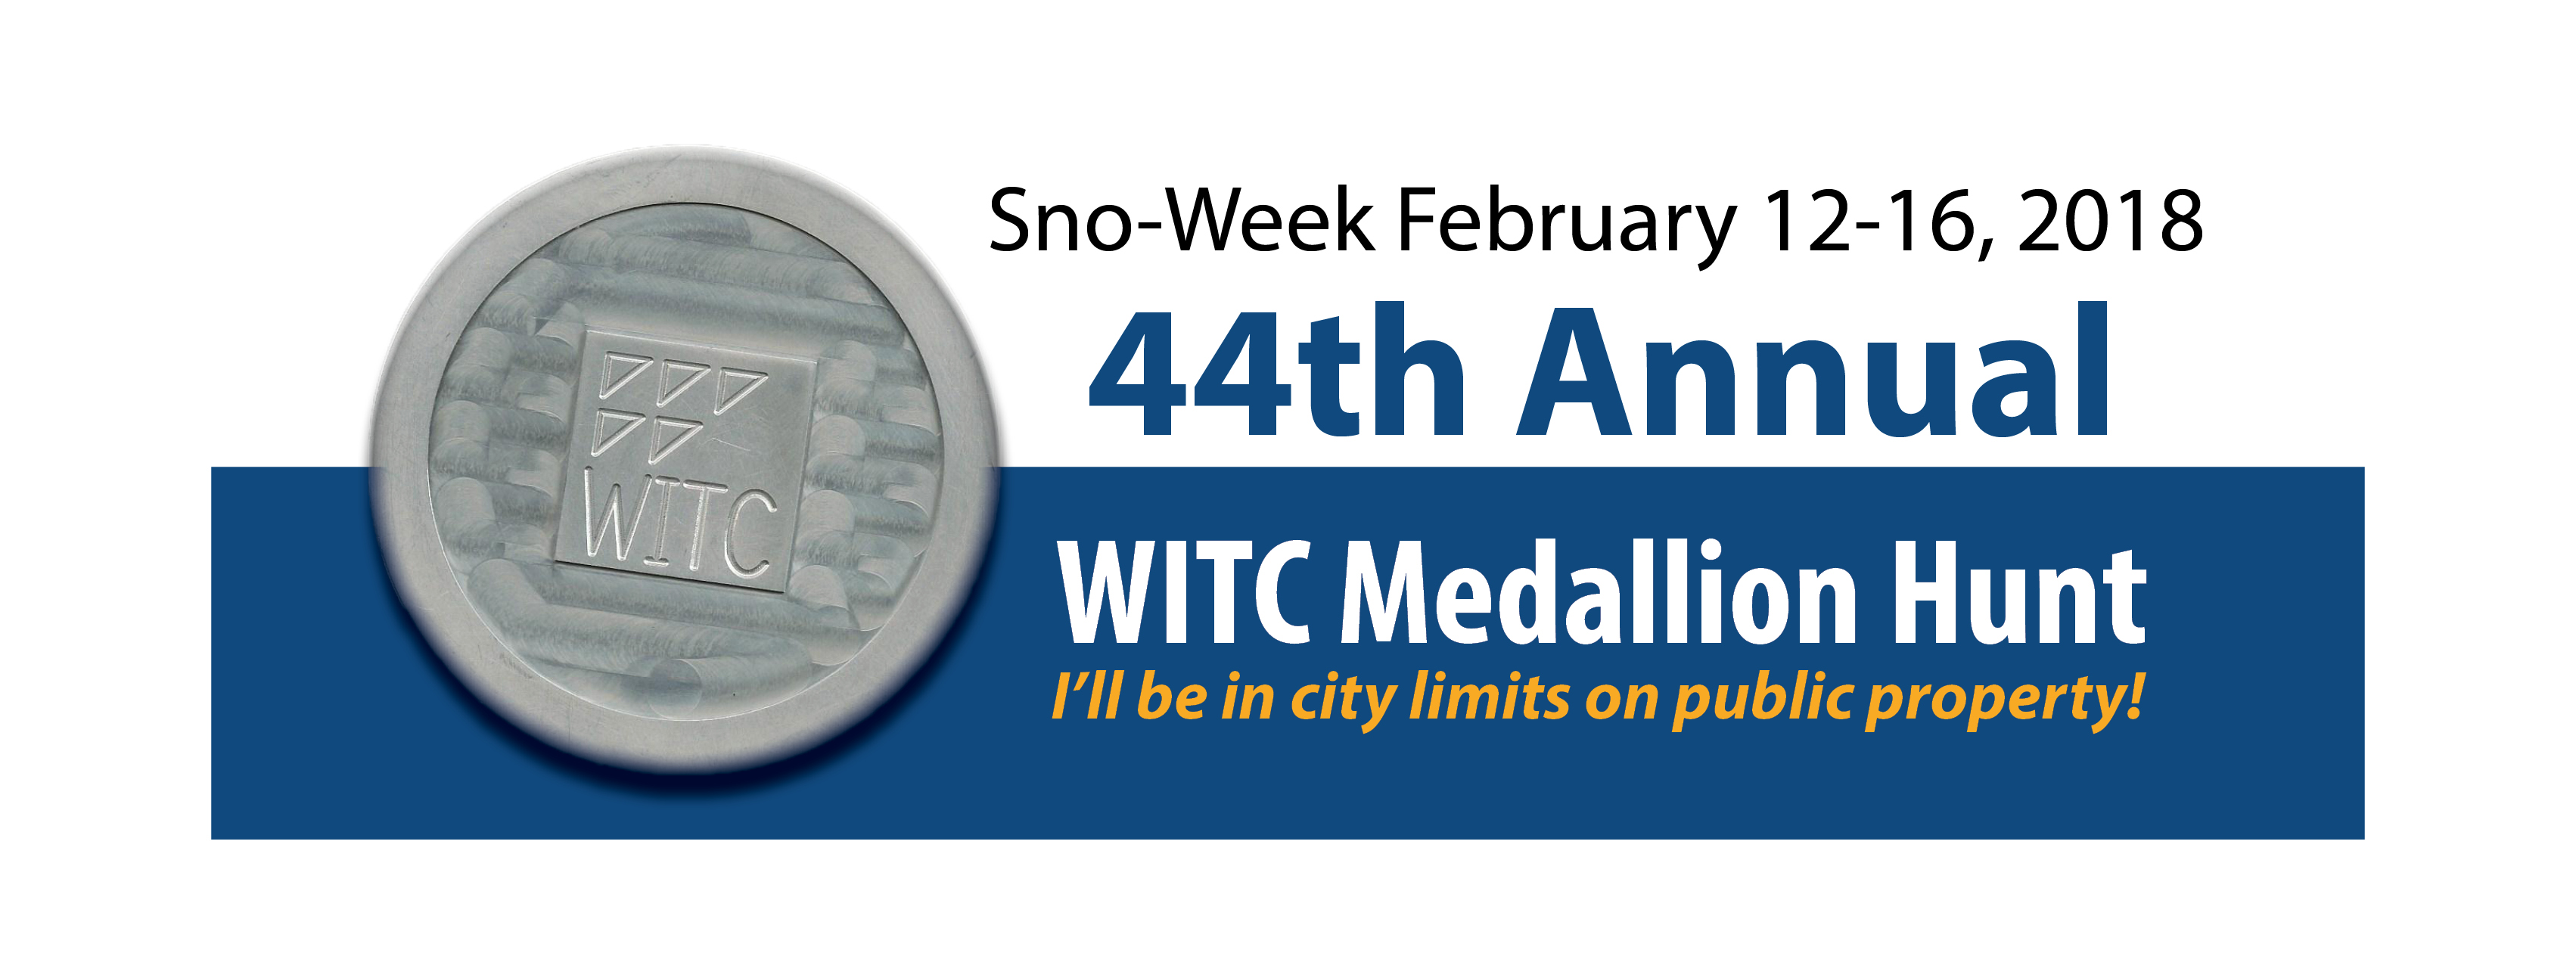 Sno-Week February 12th through the 16th, 2018. 44th Annual WITC Medallion Hunt will be in city limits on public property.